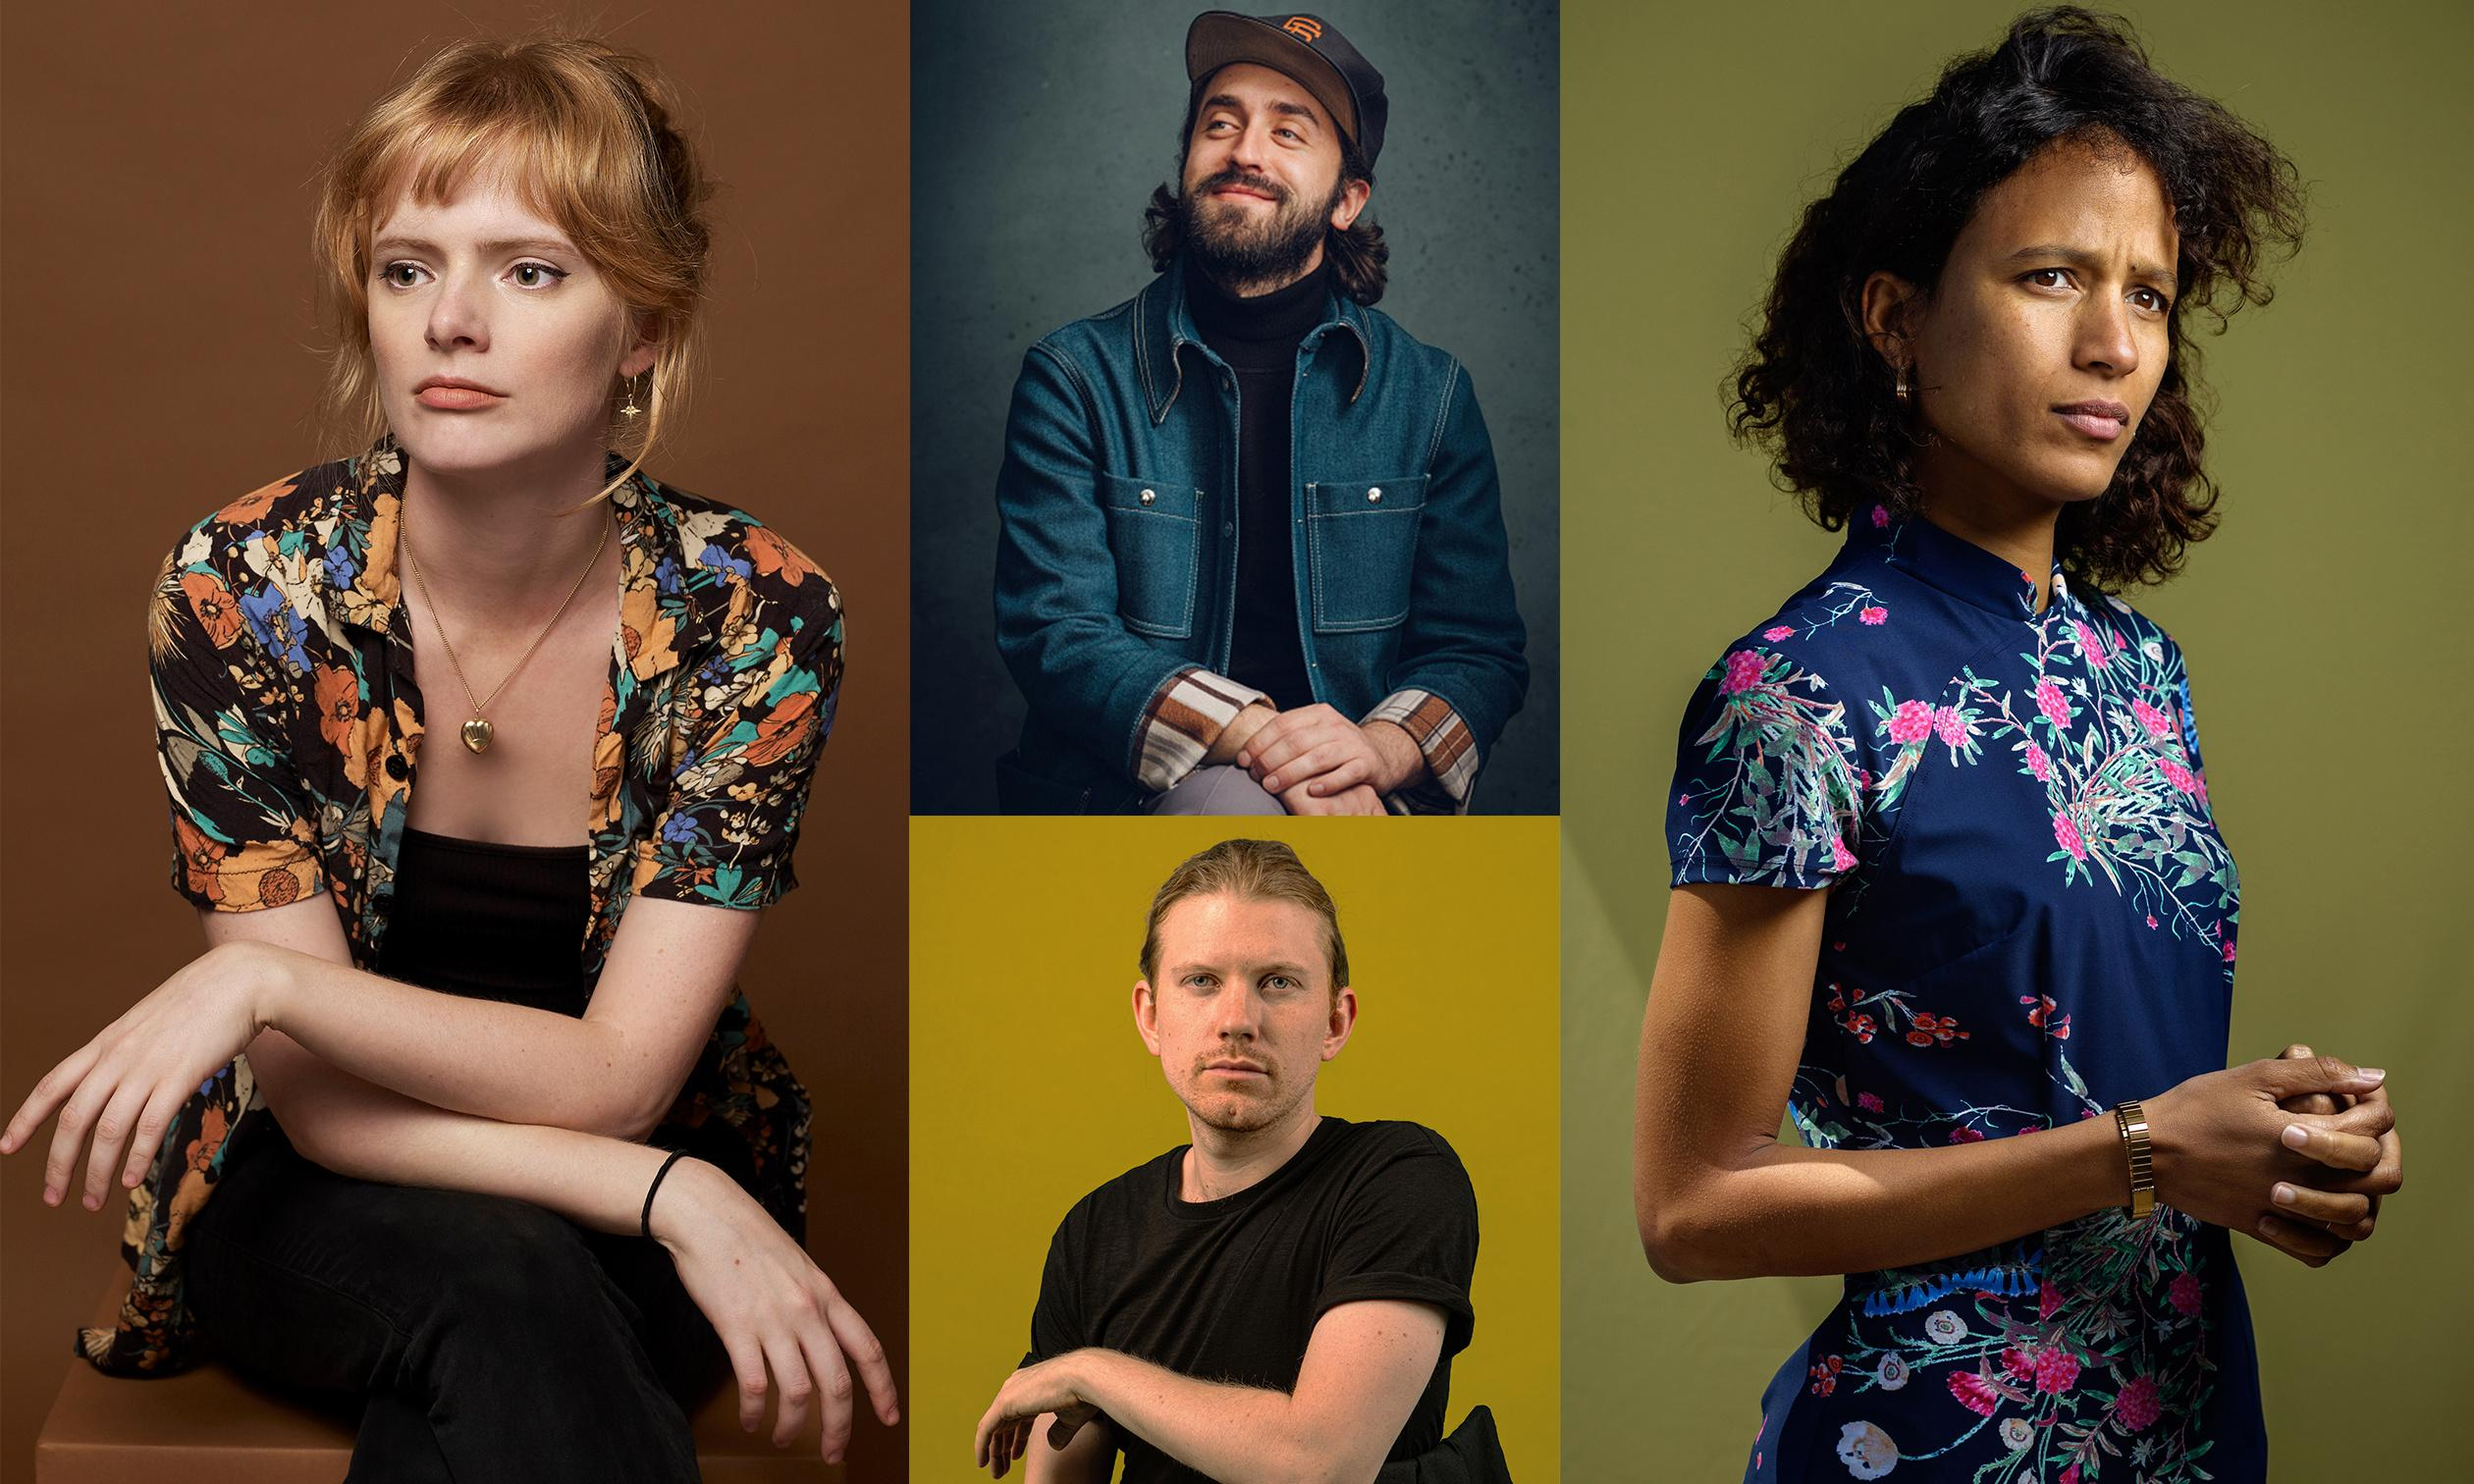 Meet the new directors who lit up the film festivals